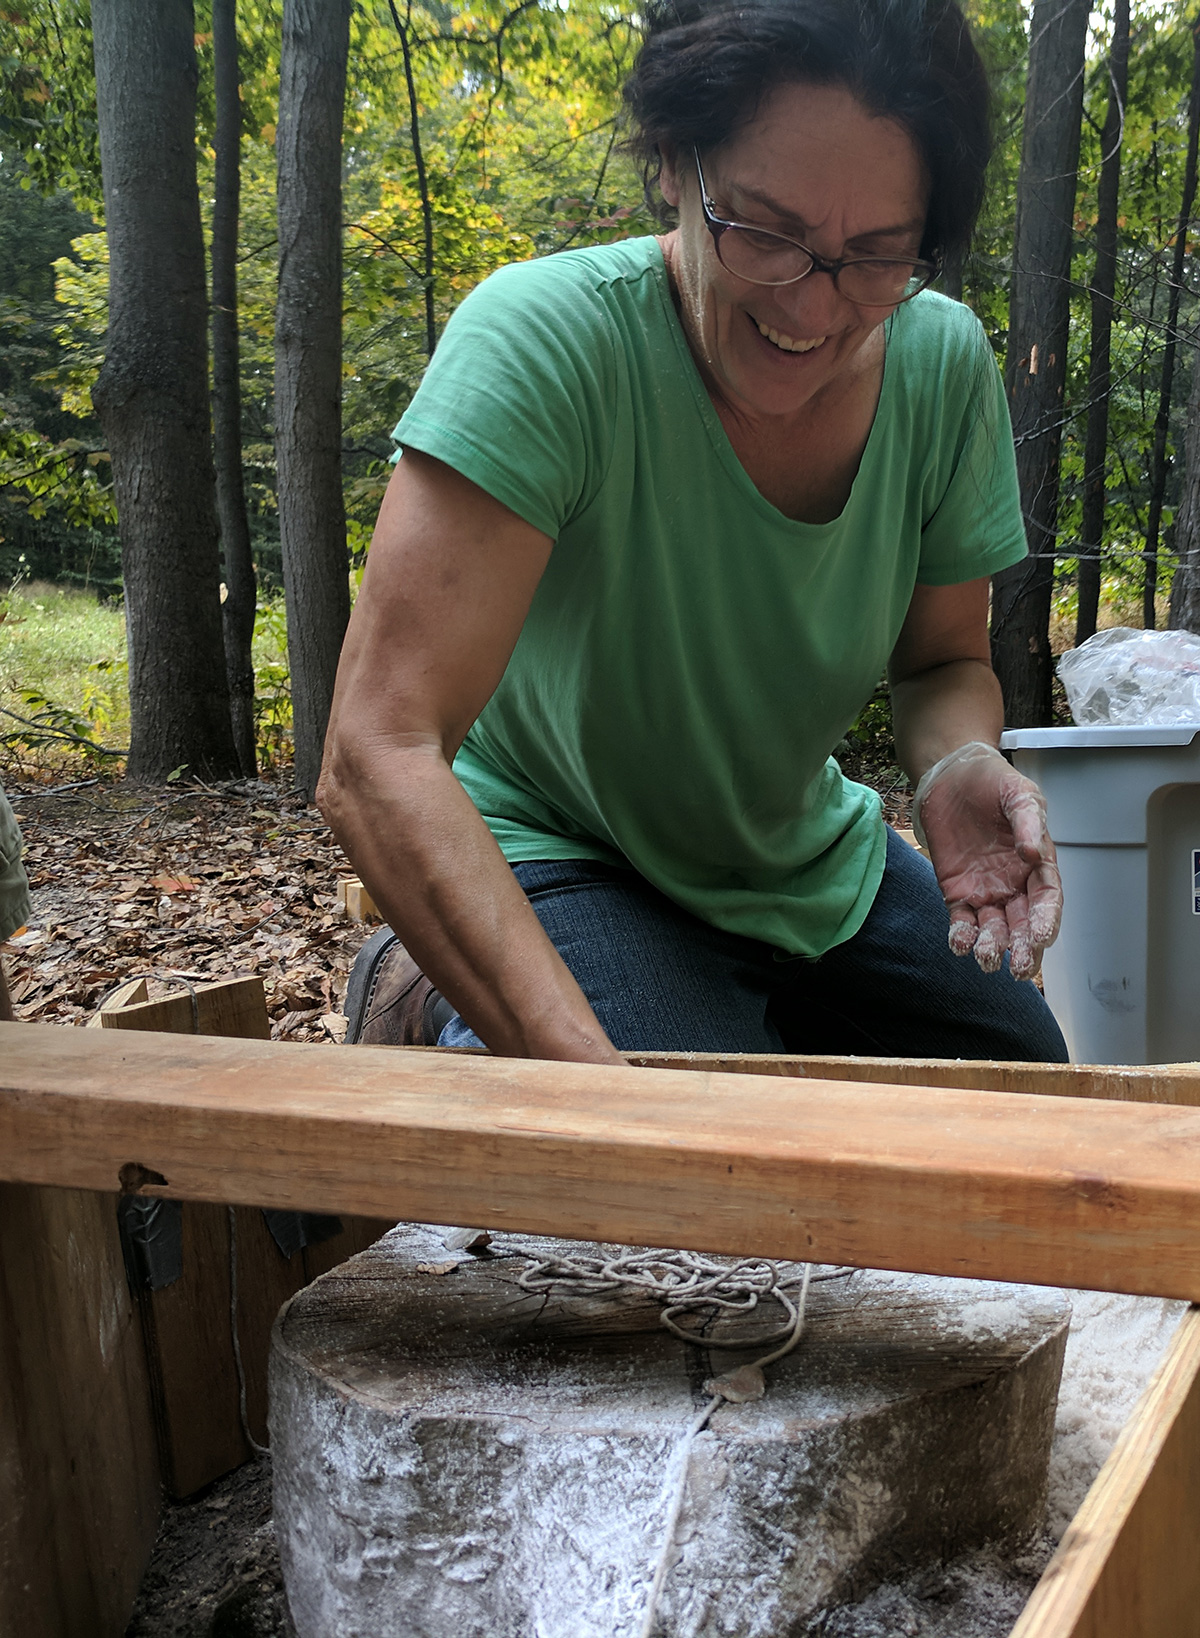 Theresa Smith creating molds in the forest